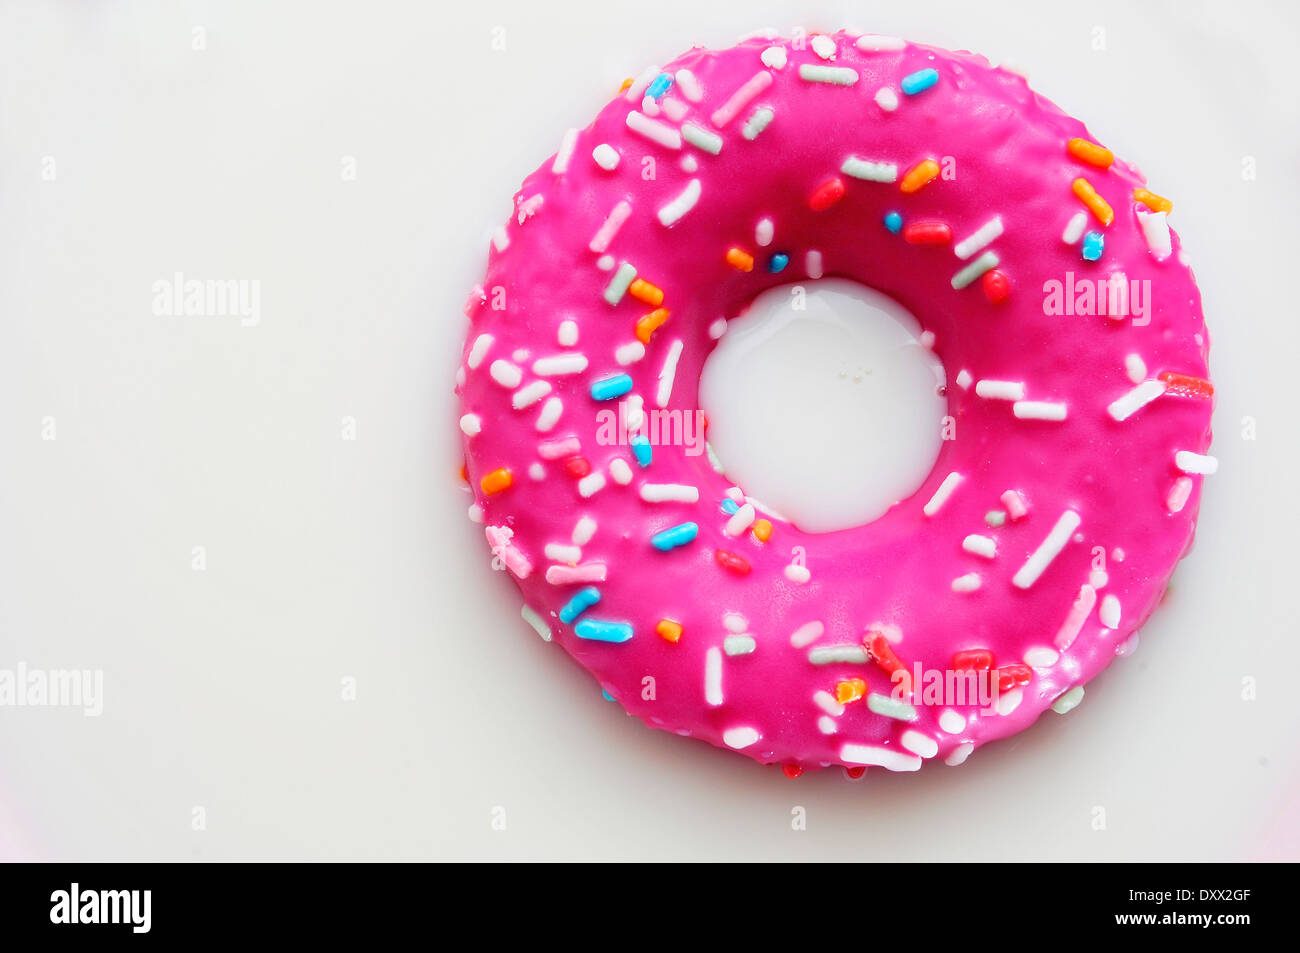 a donut coated with a pink frosting and sprinkles of different colors soaking in milk - Stock Image